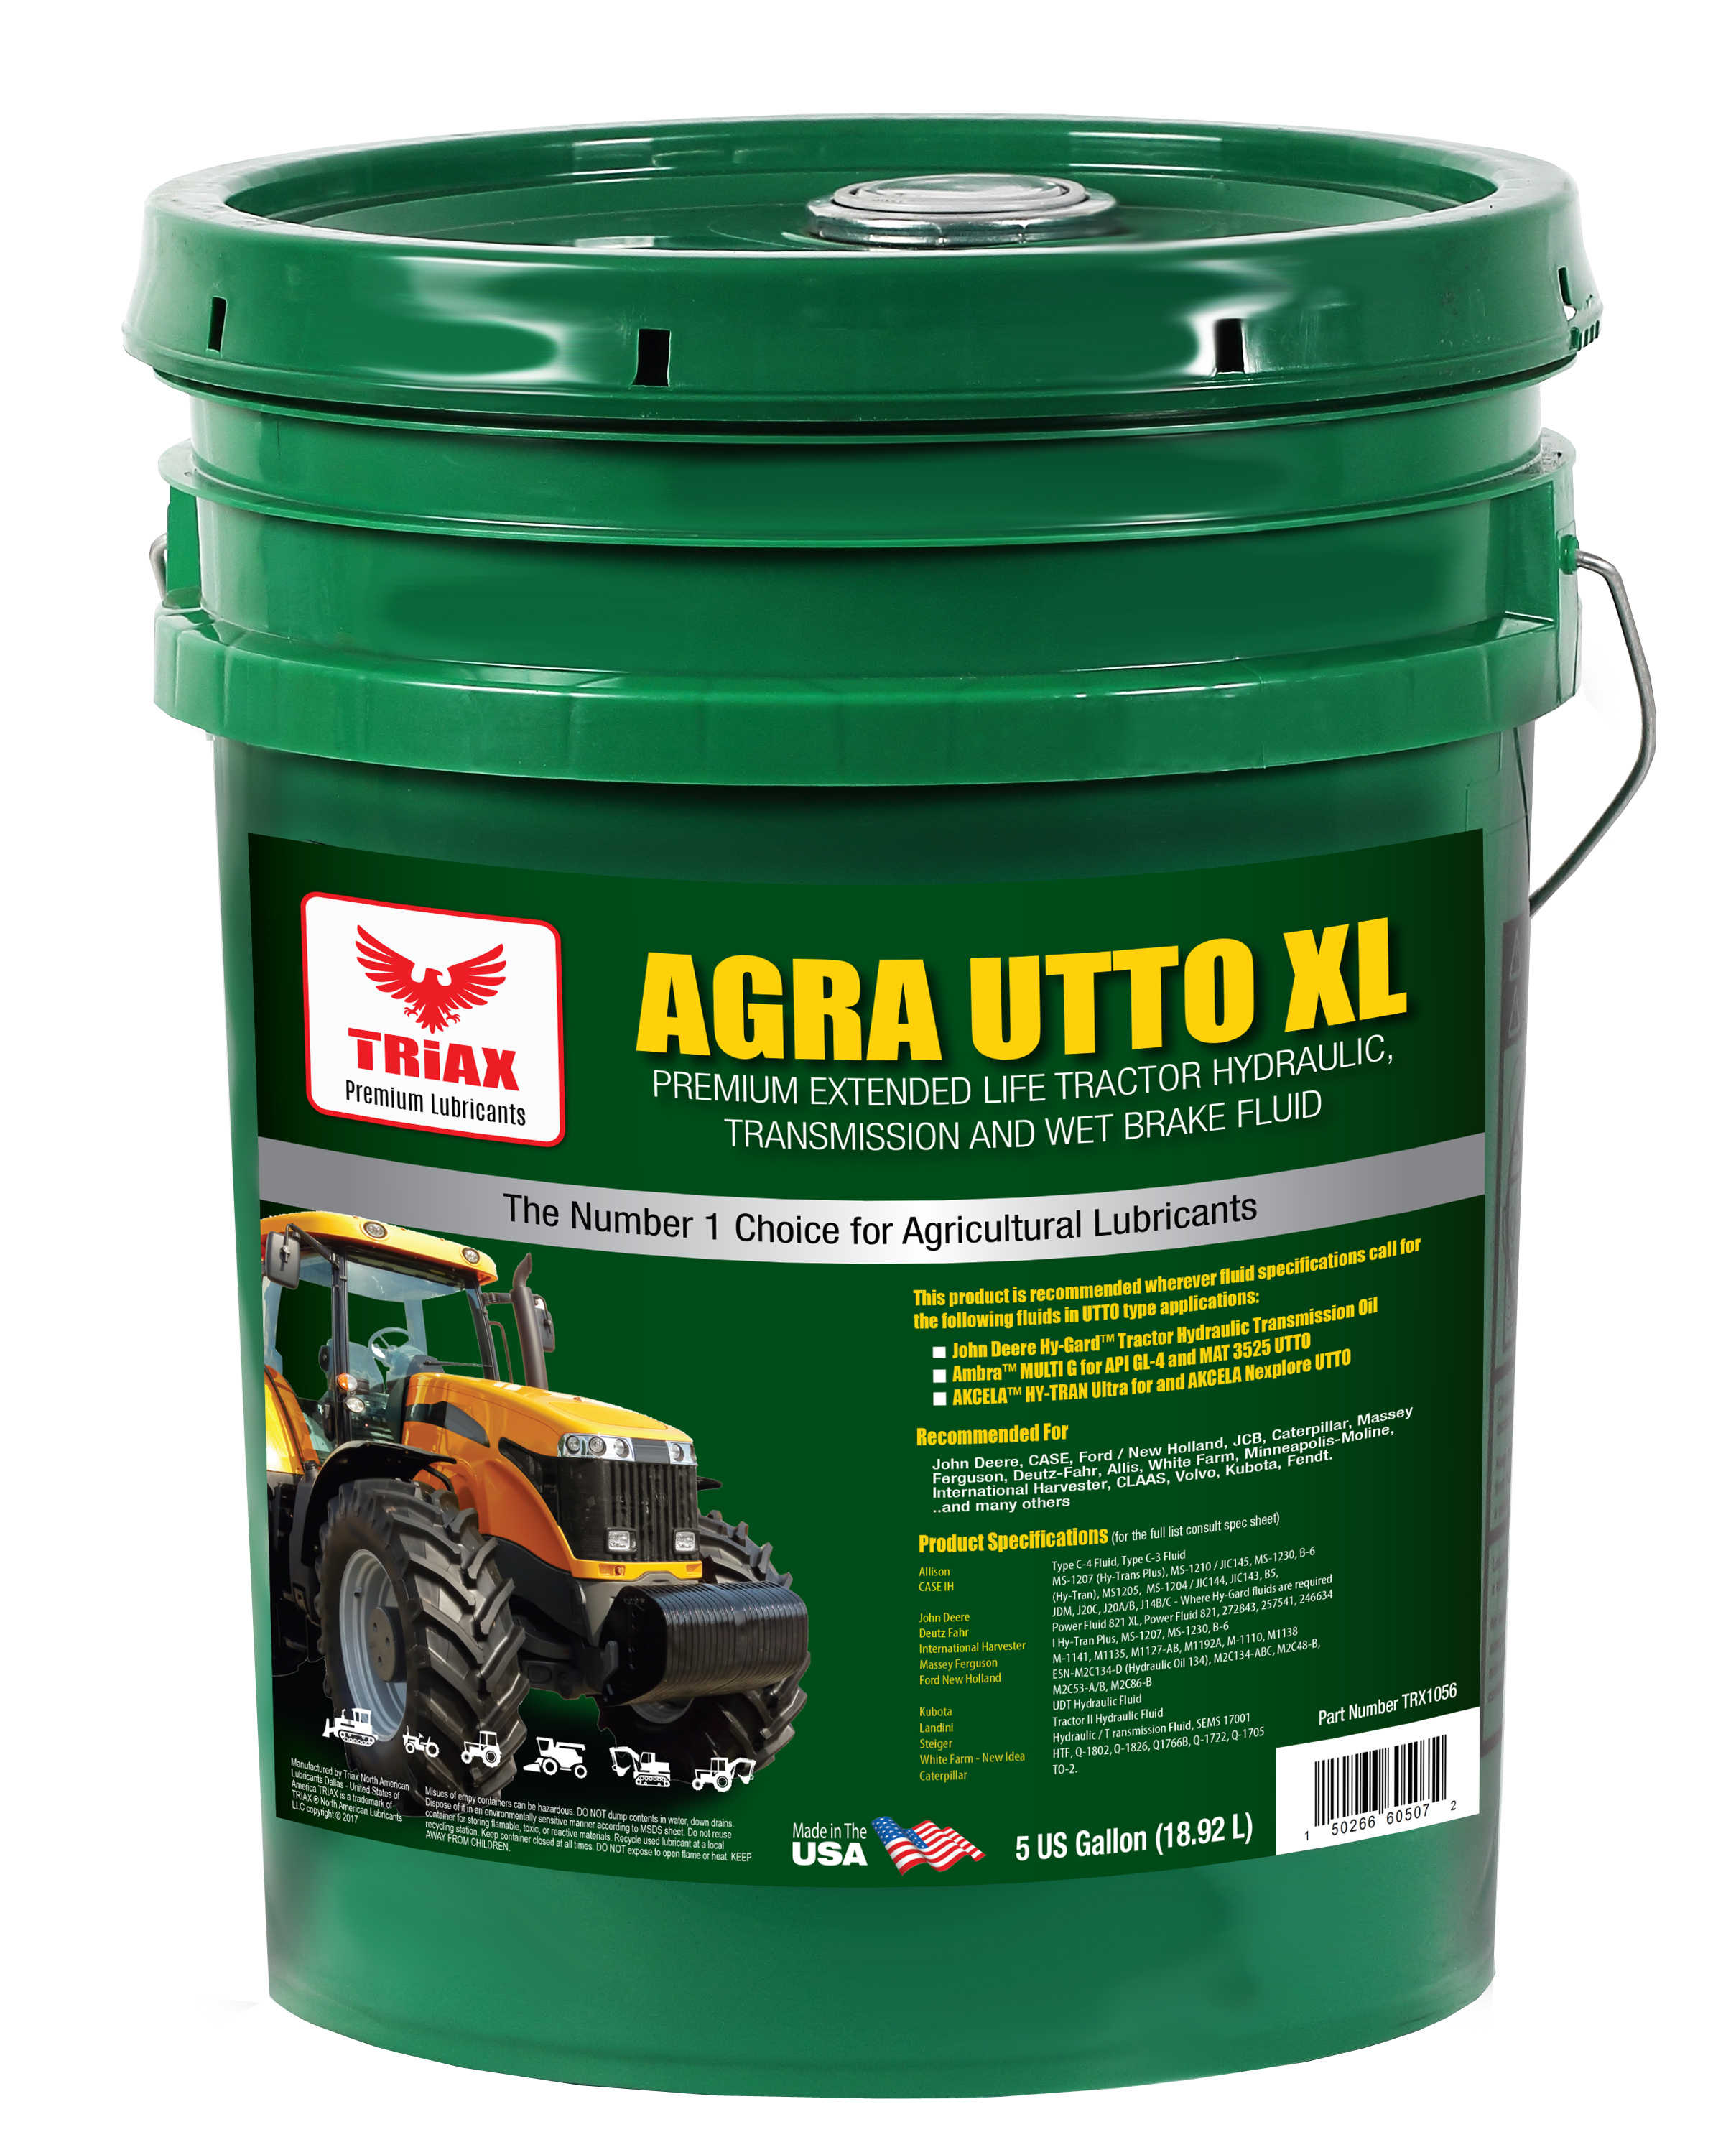 TRIAX Agra UTTO XL Tractor Hydraulic Fluid (Transmisie, Hidraulic, Wet Brake)